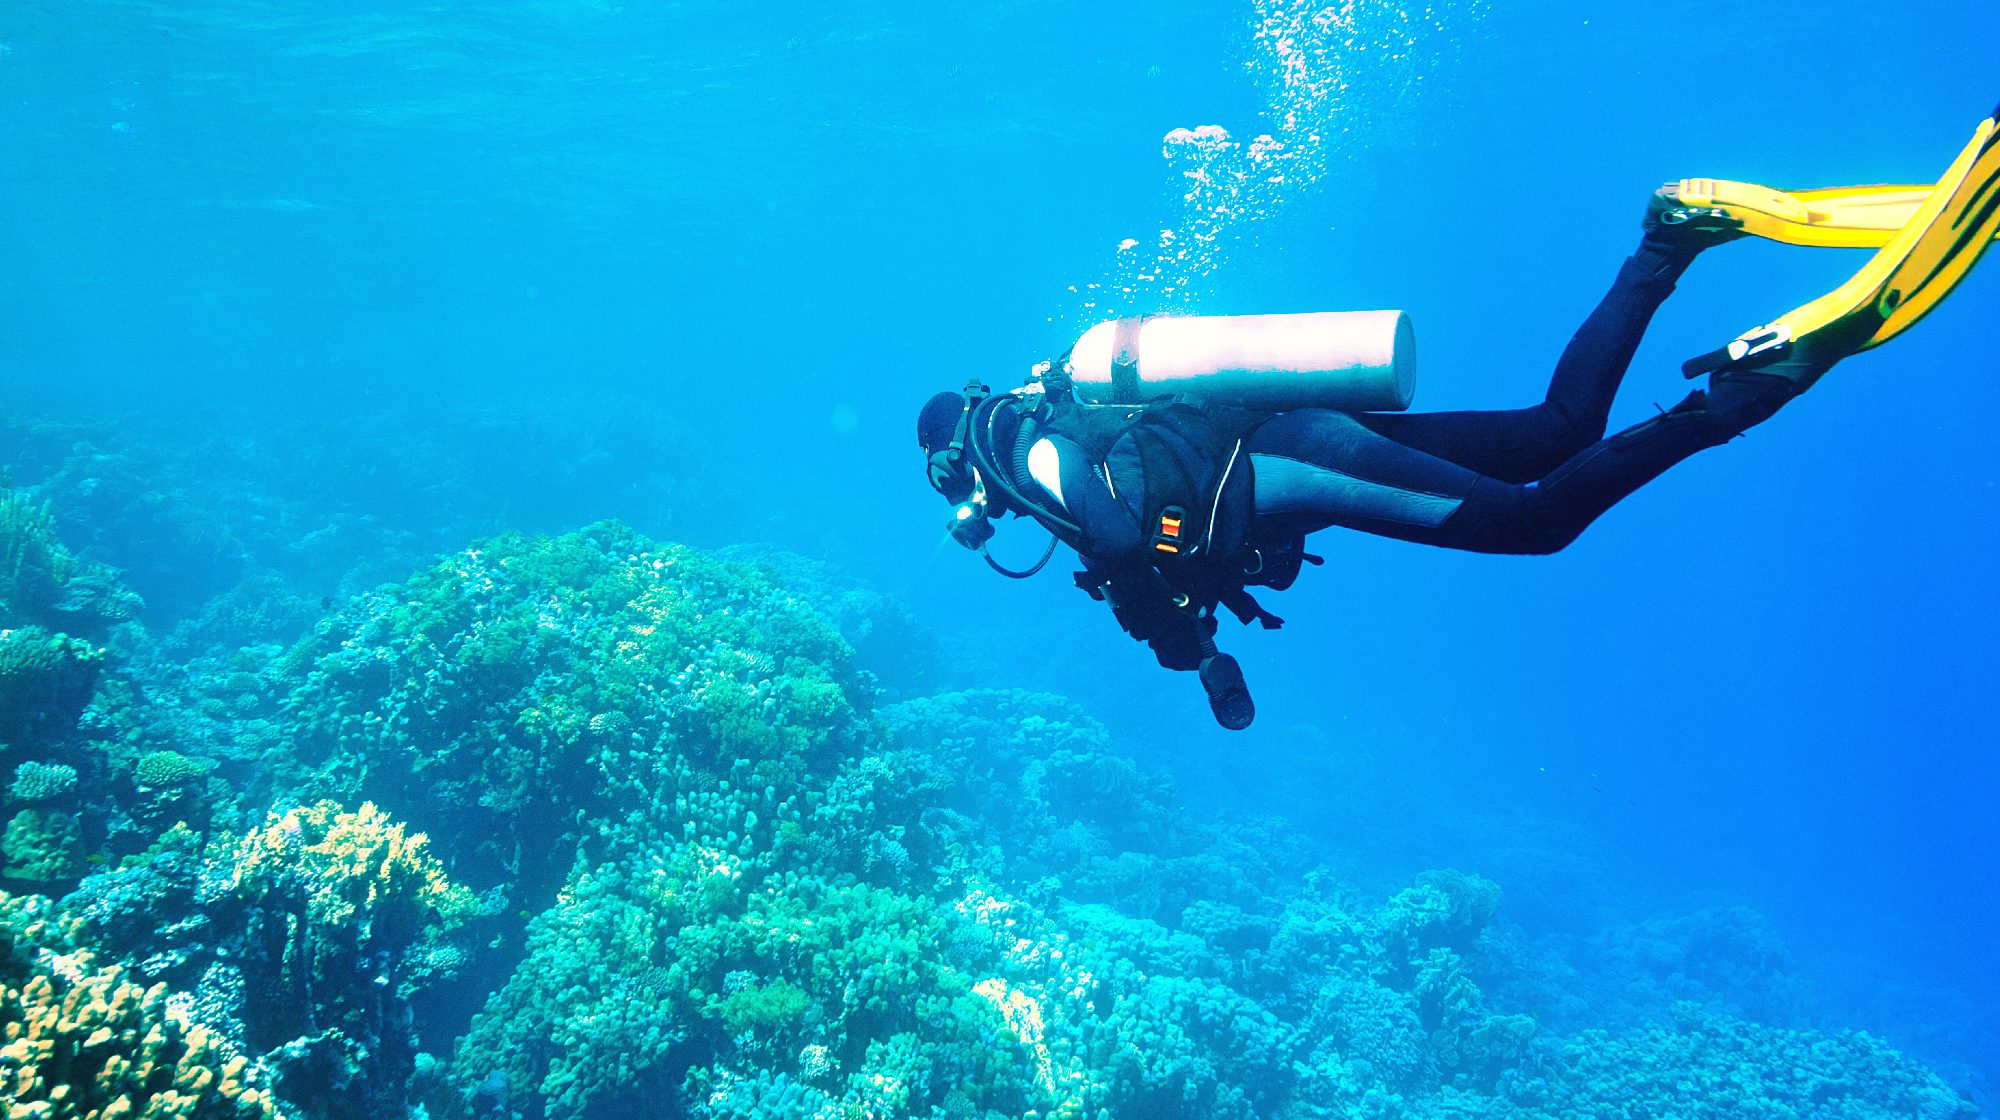 A person scuba diving on the Canary Islands.